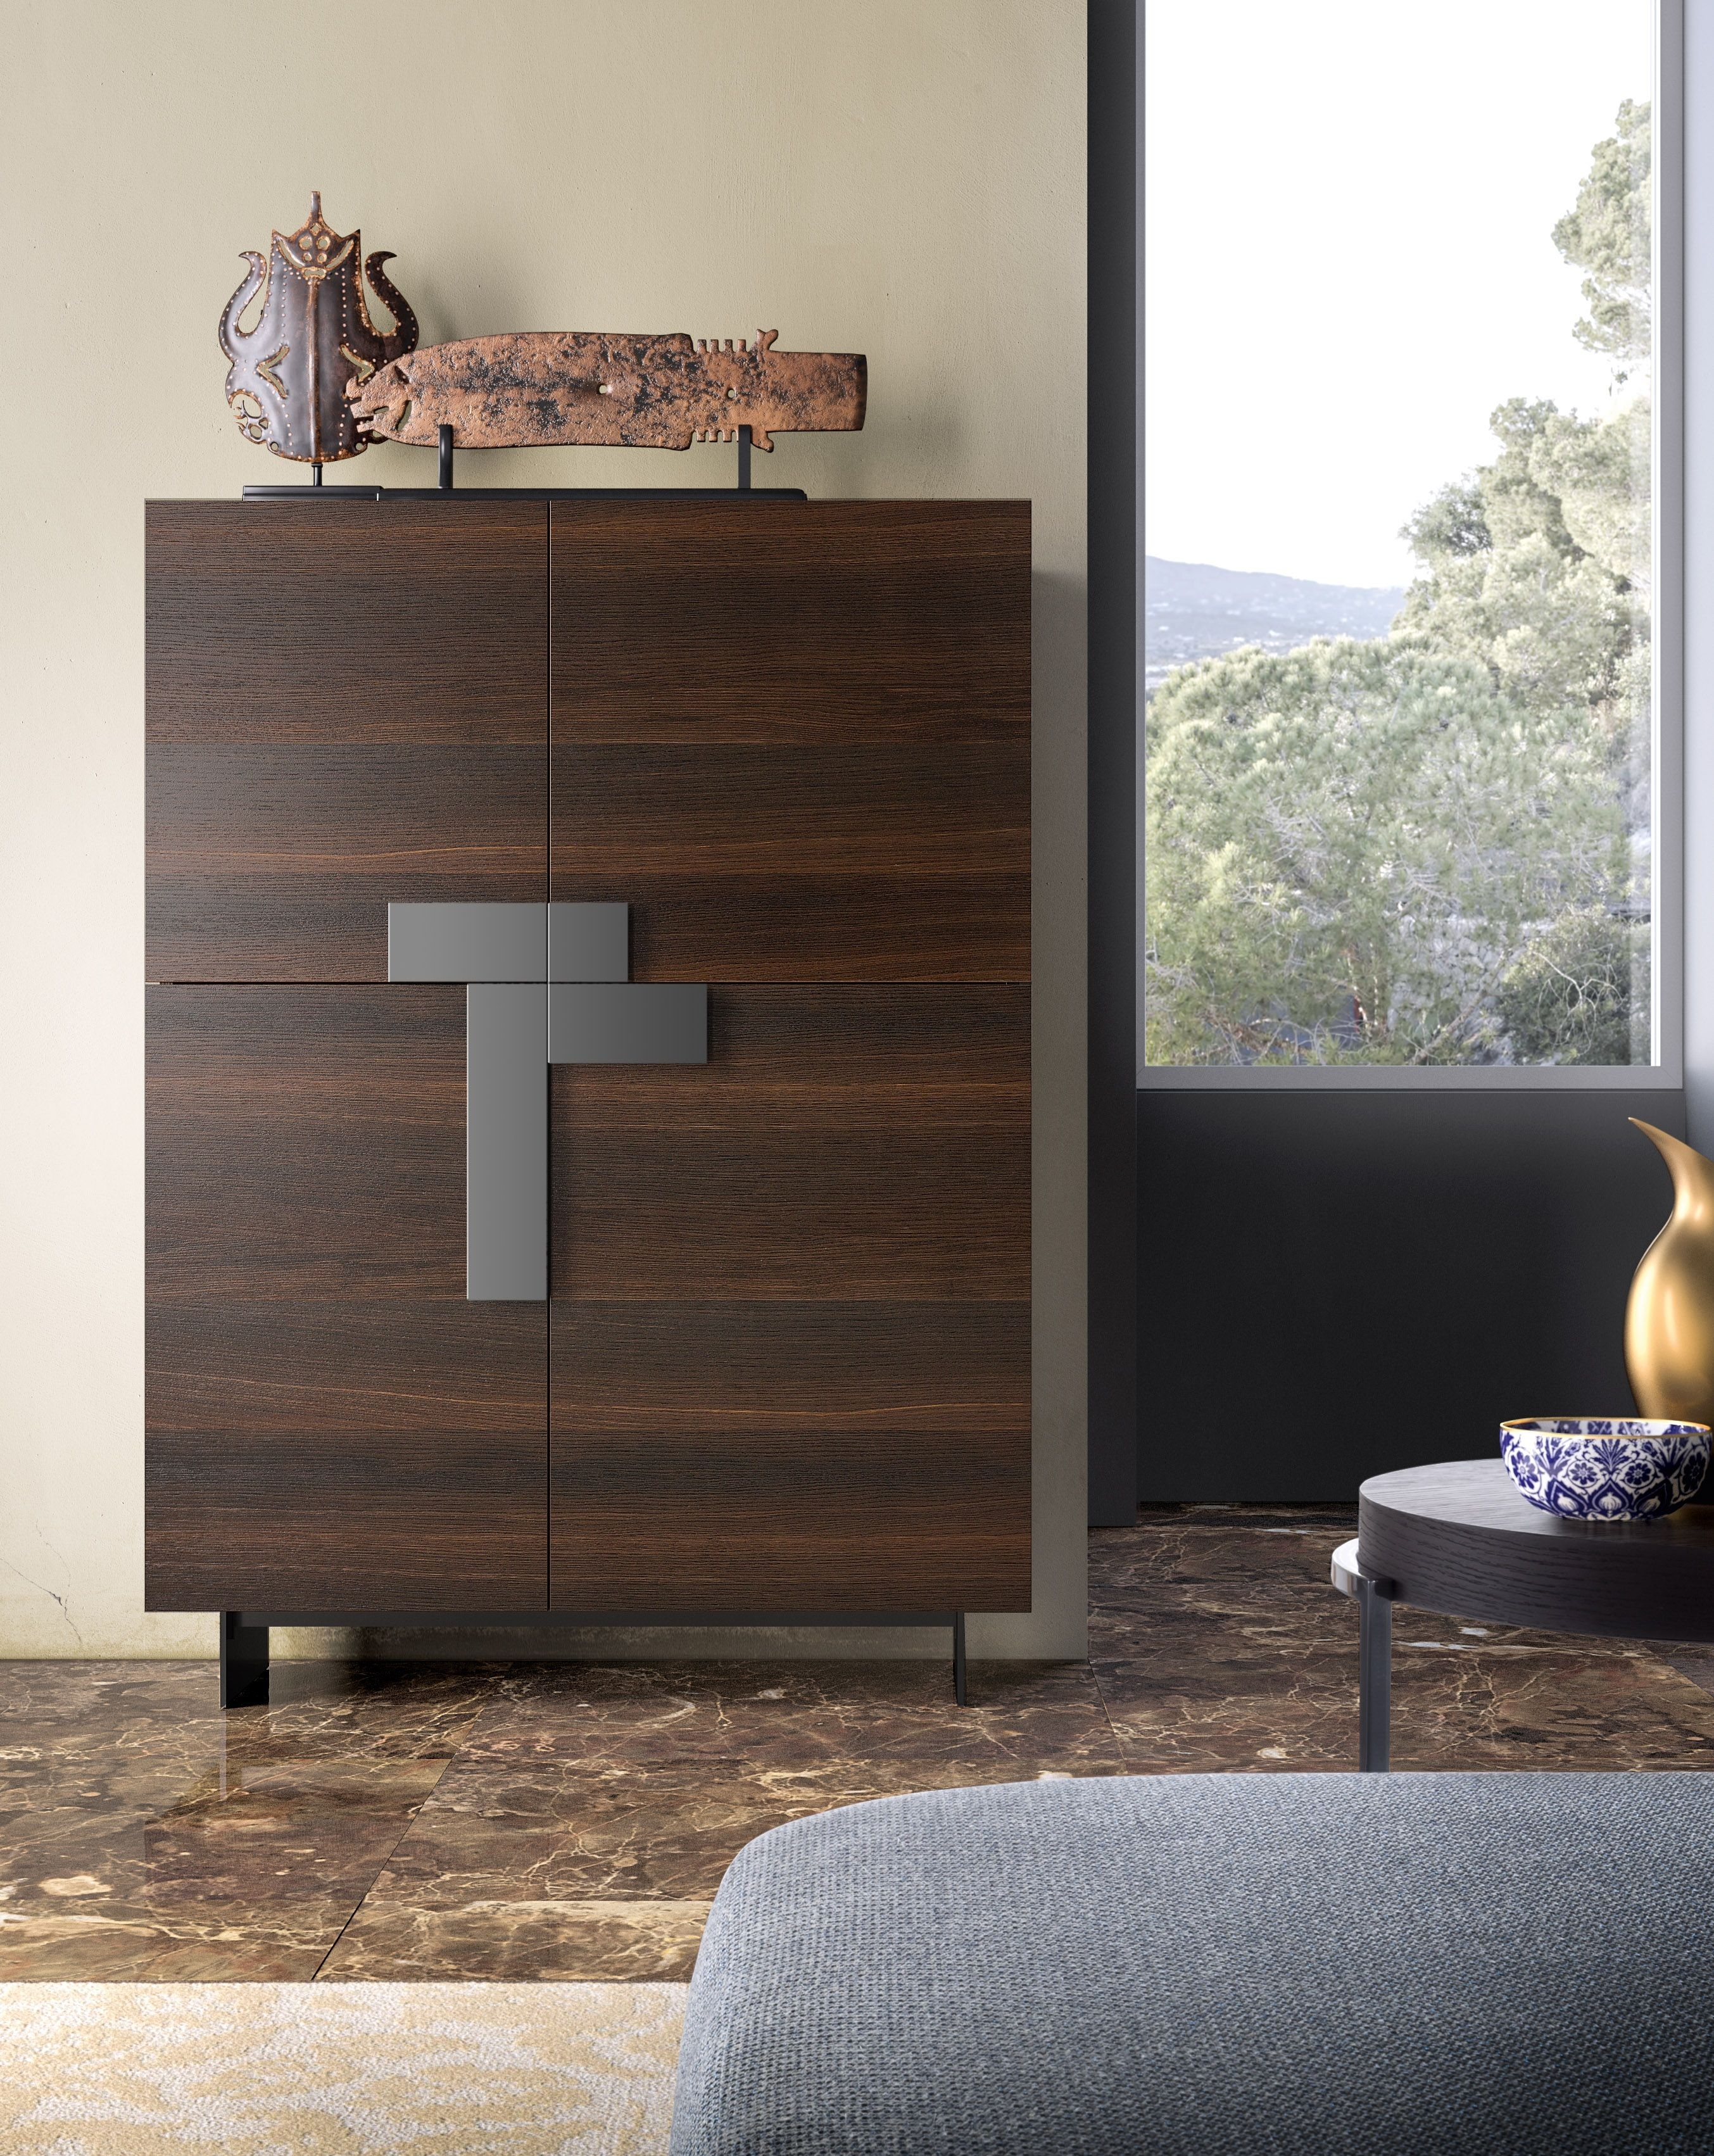 Ginevra Sideboard With Burnt Oak Structure And Fronts, Titanium pertaining to Burnt Oak Wood Sideboards (Image 16 of 30)